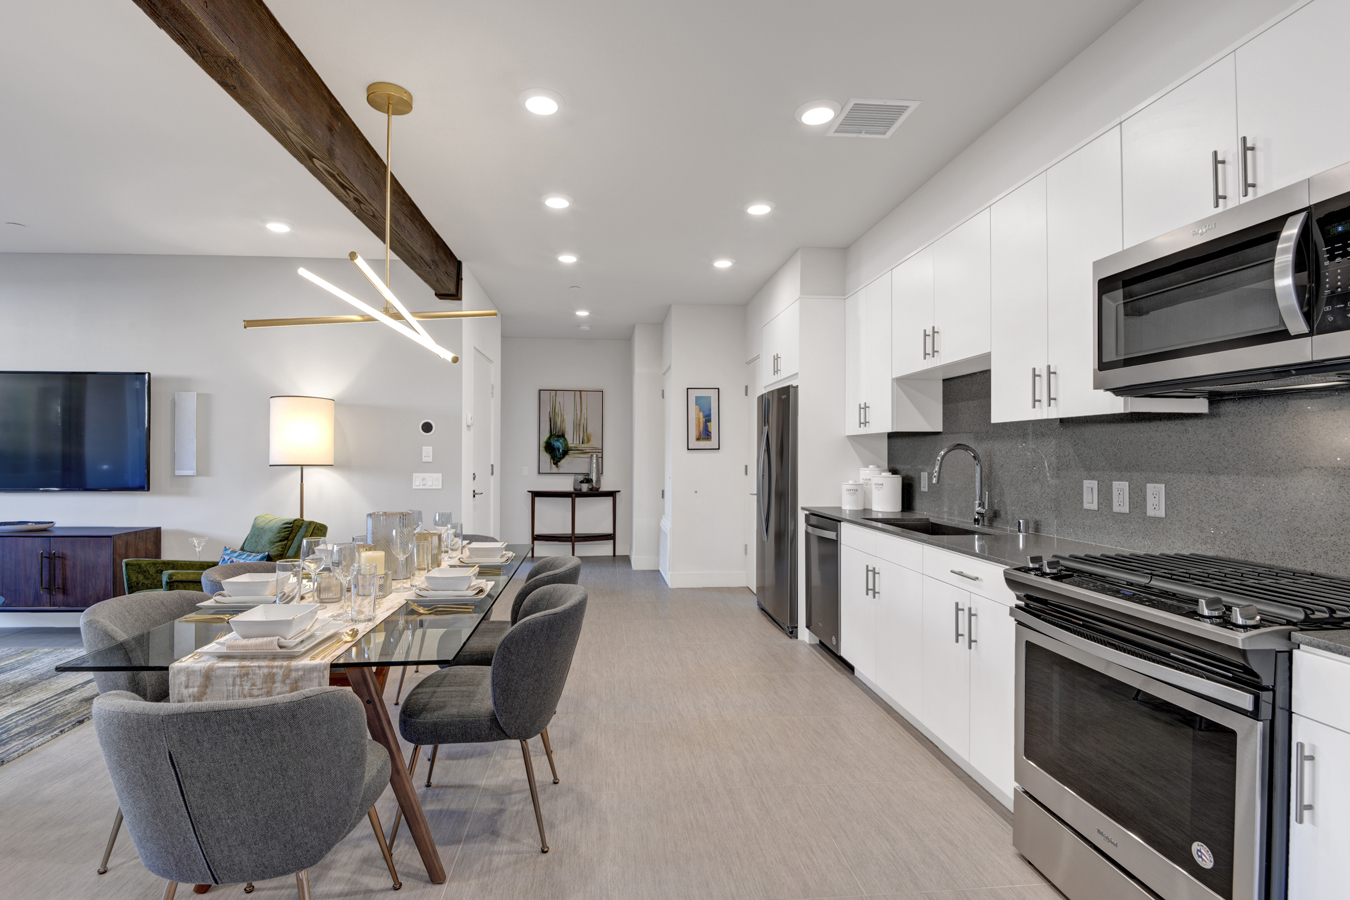 1200-kitchen-and-dining-room-through